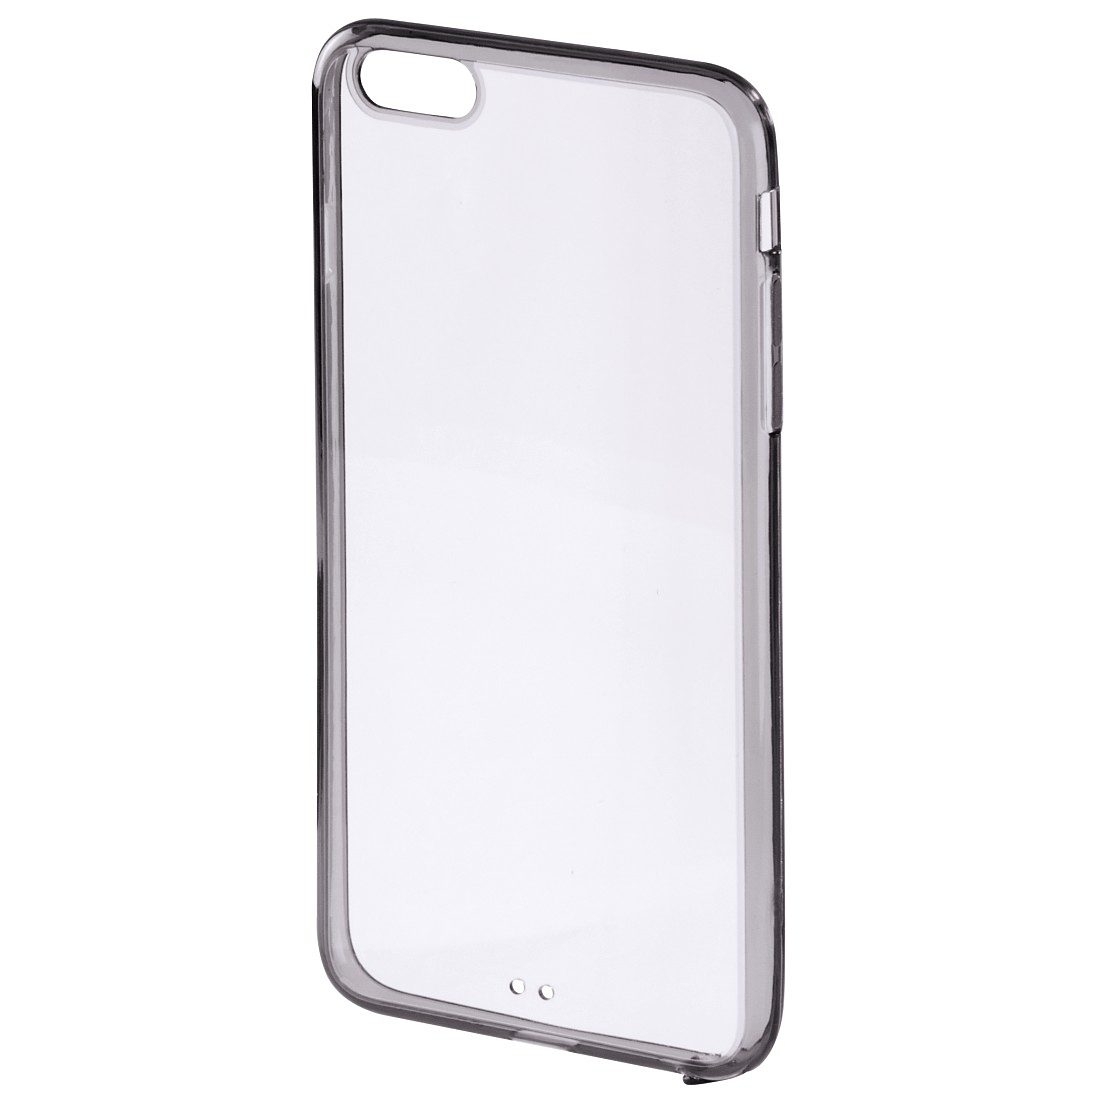 Hama Cover Frame für Apple iPhone 6/6s, Schwarz